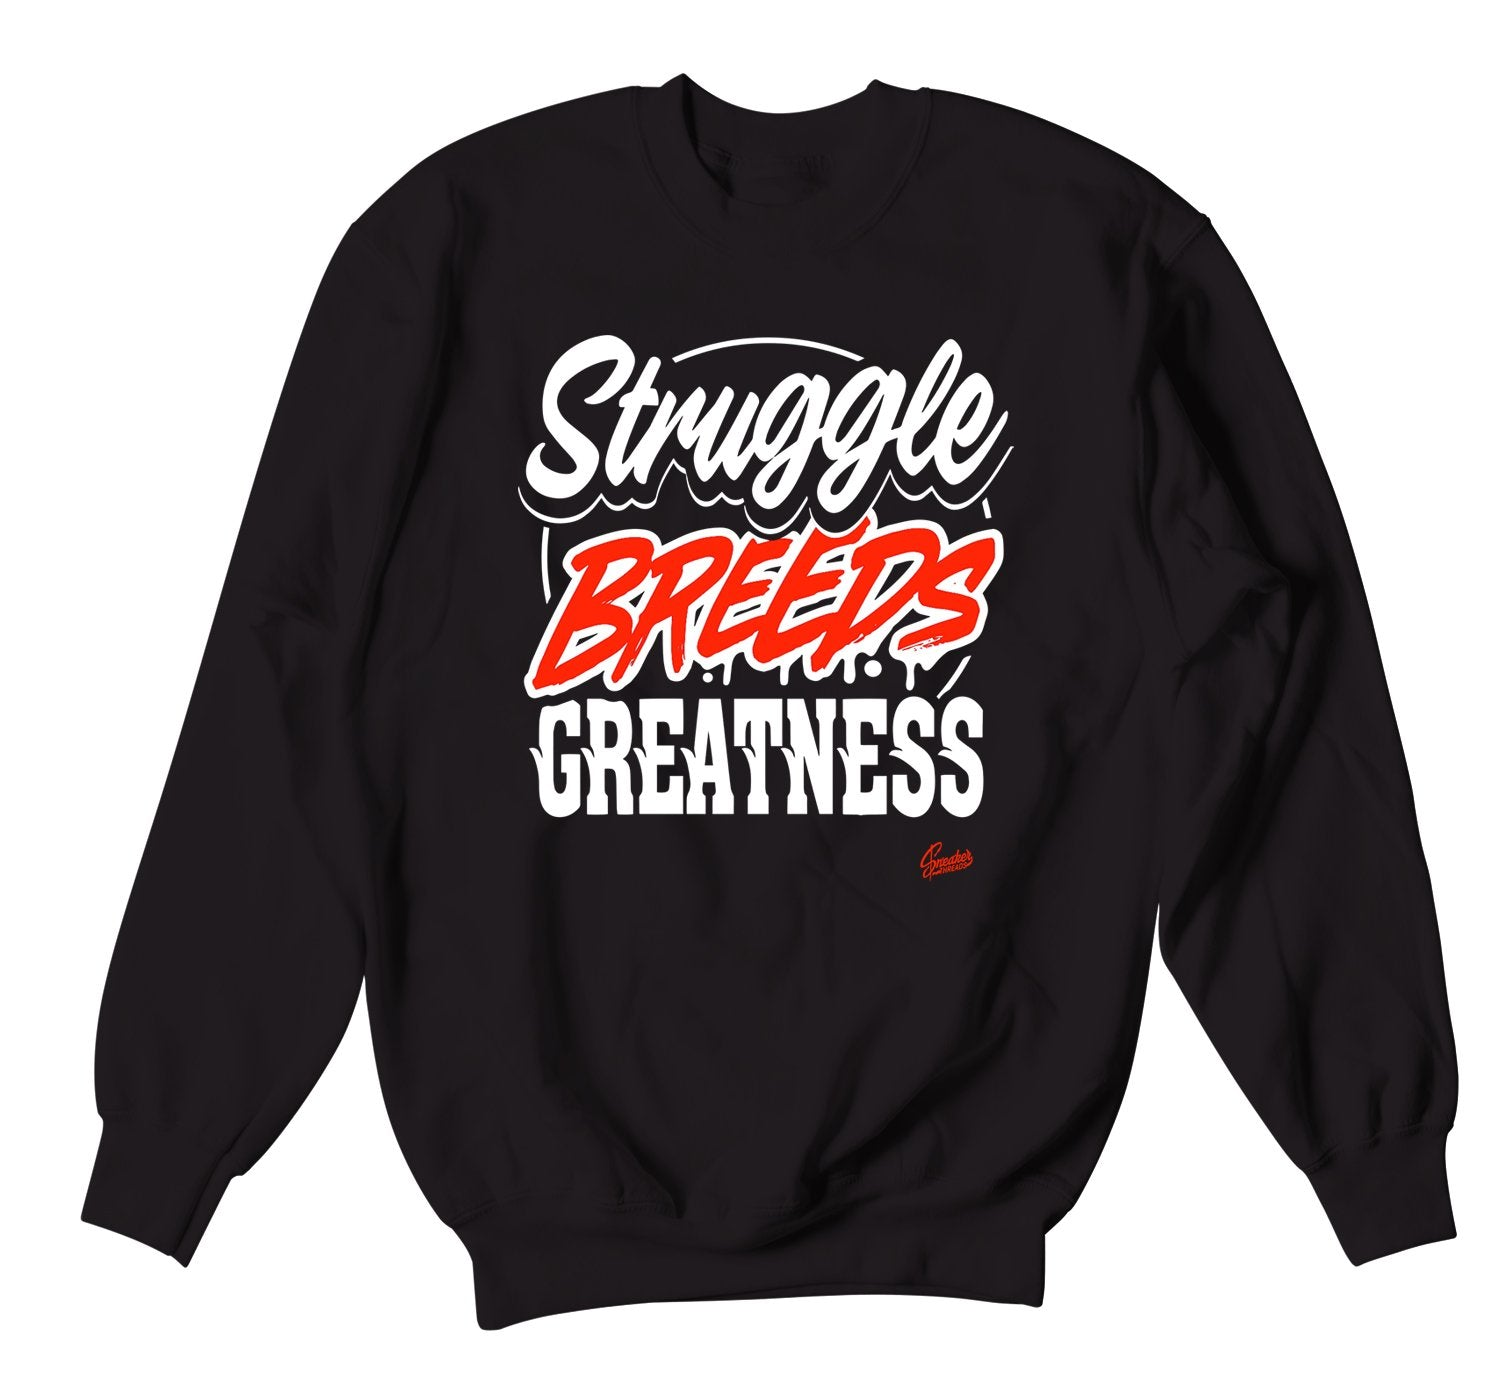 crewneck sweater collection designed to match the lava foamposite sneakers